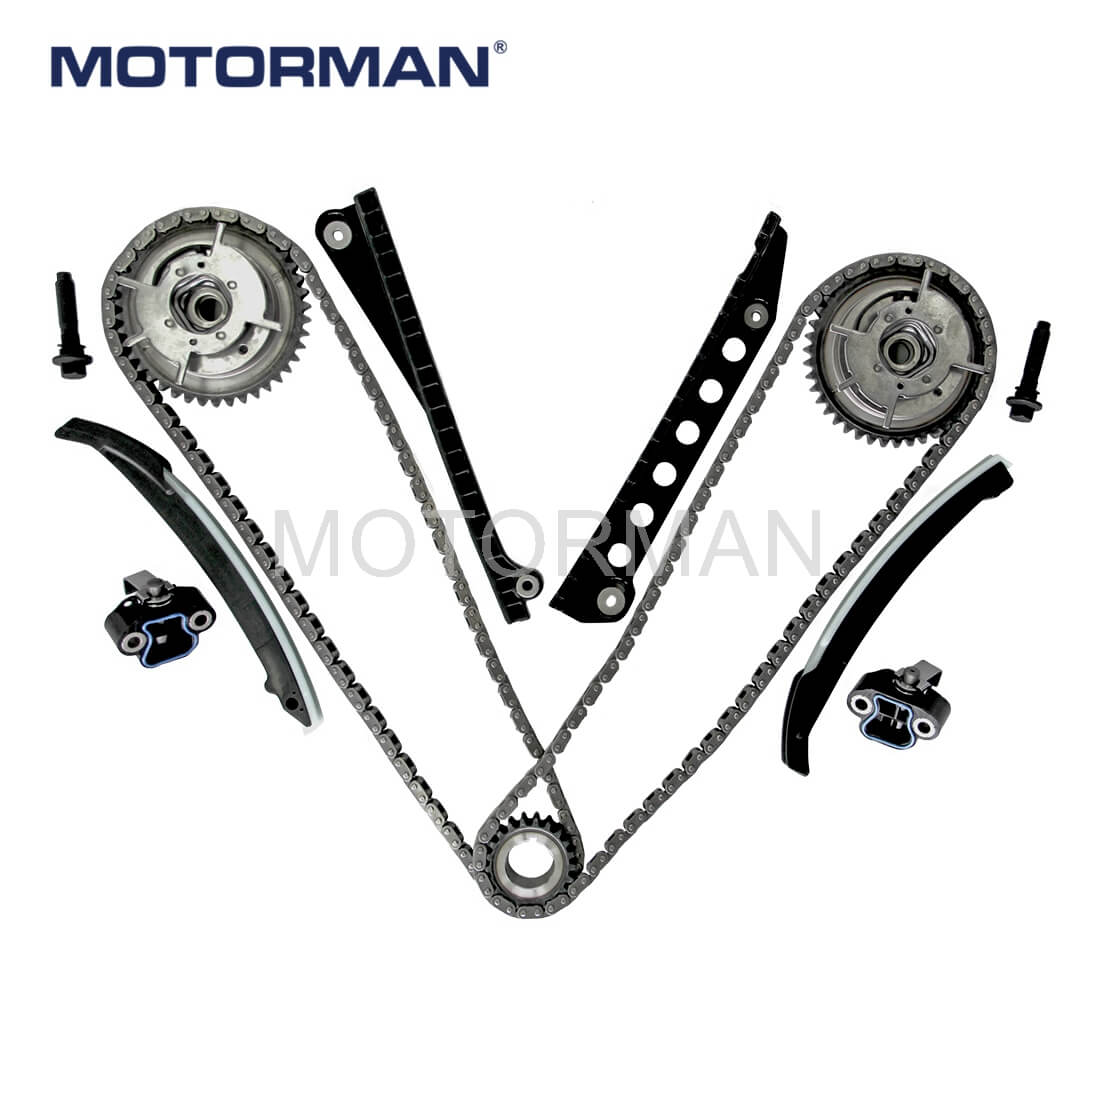 Timing Chain Kits 9-0391SB/76112 FactoryVOLGA, FORD Timing